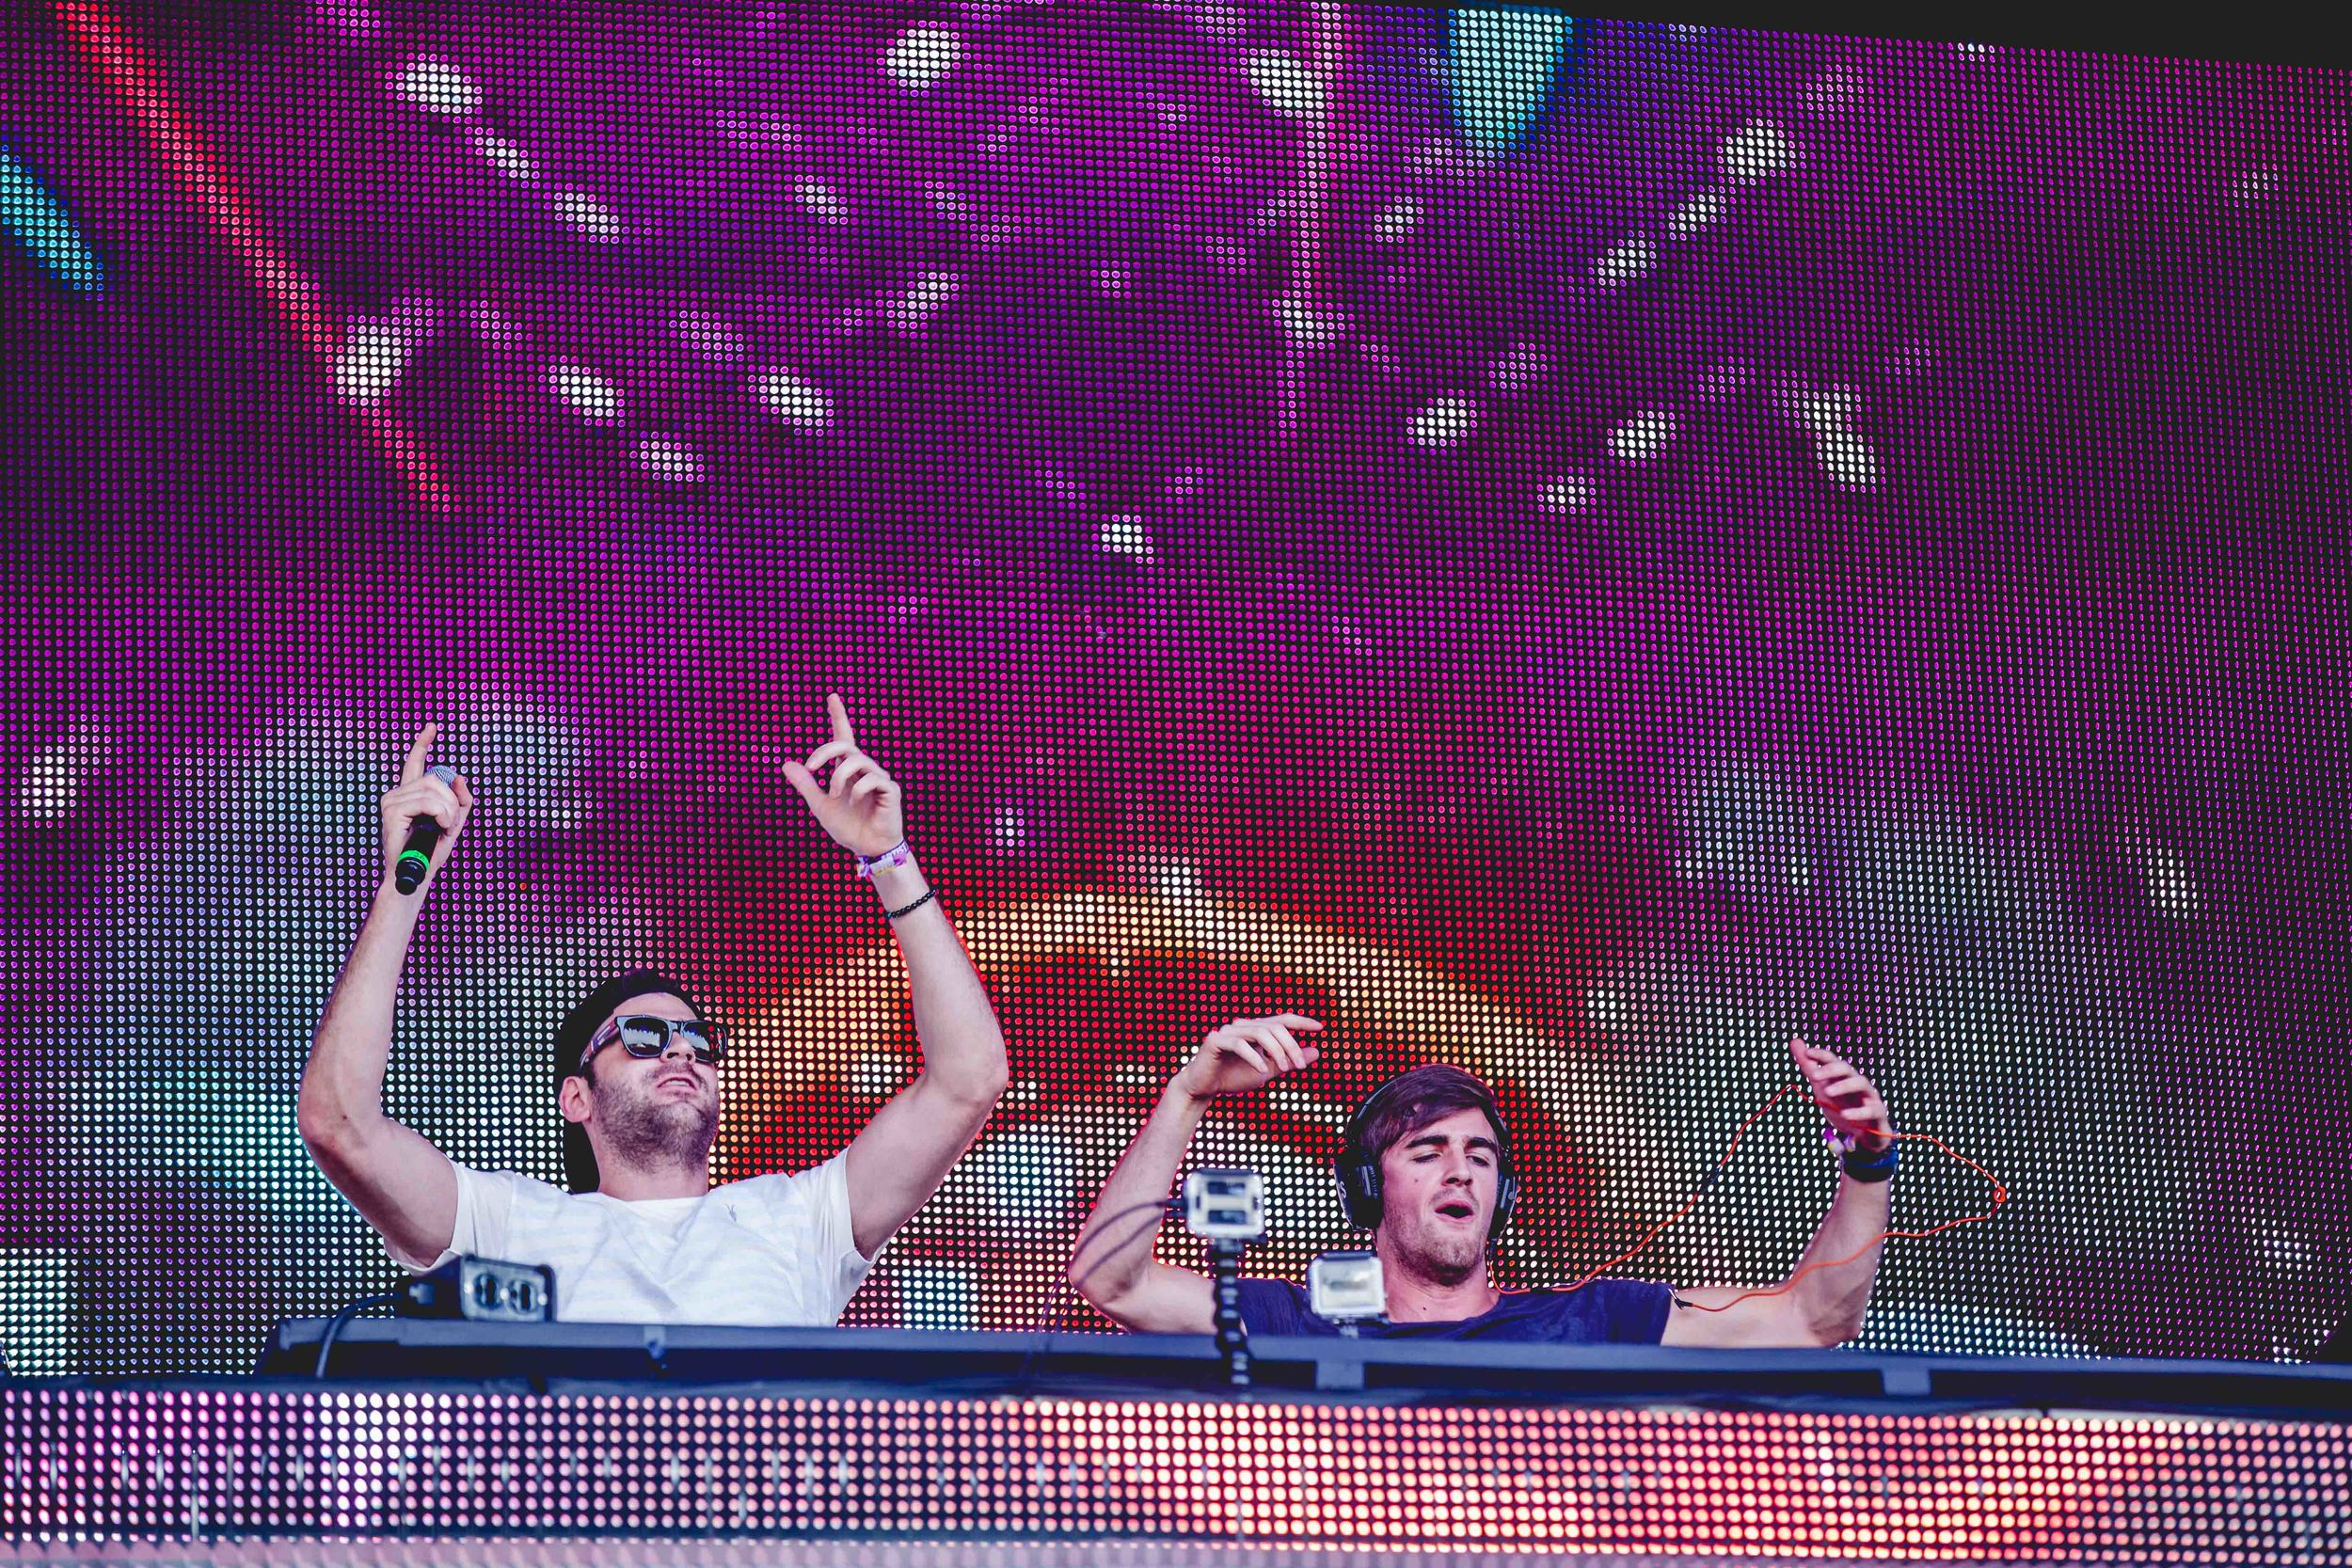 The Chainsmokers (Sunset Music Festival 2014)